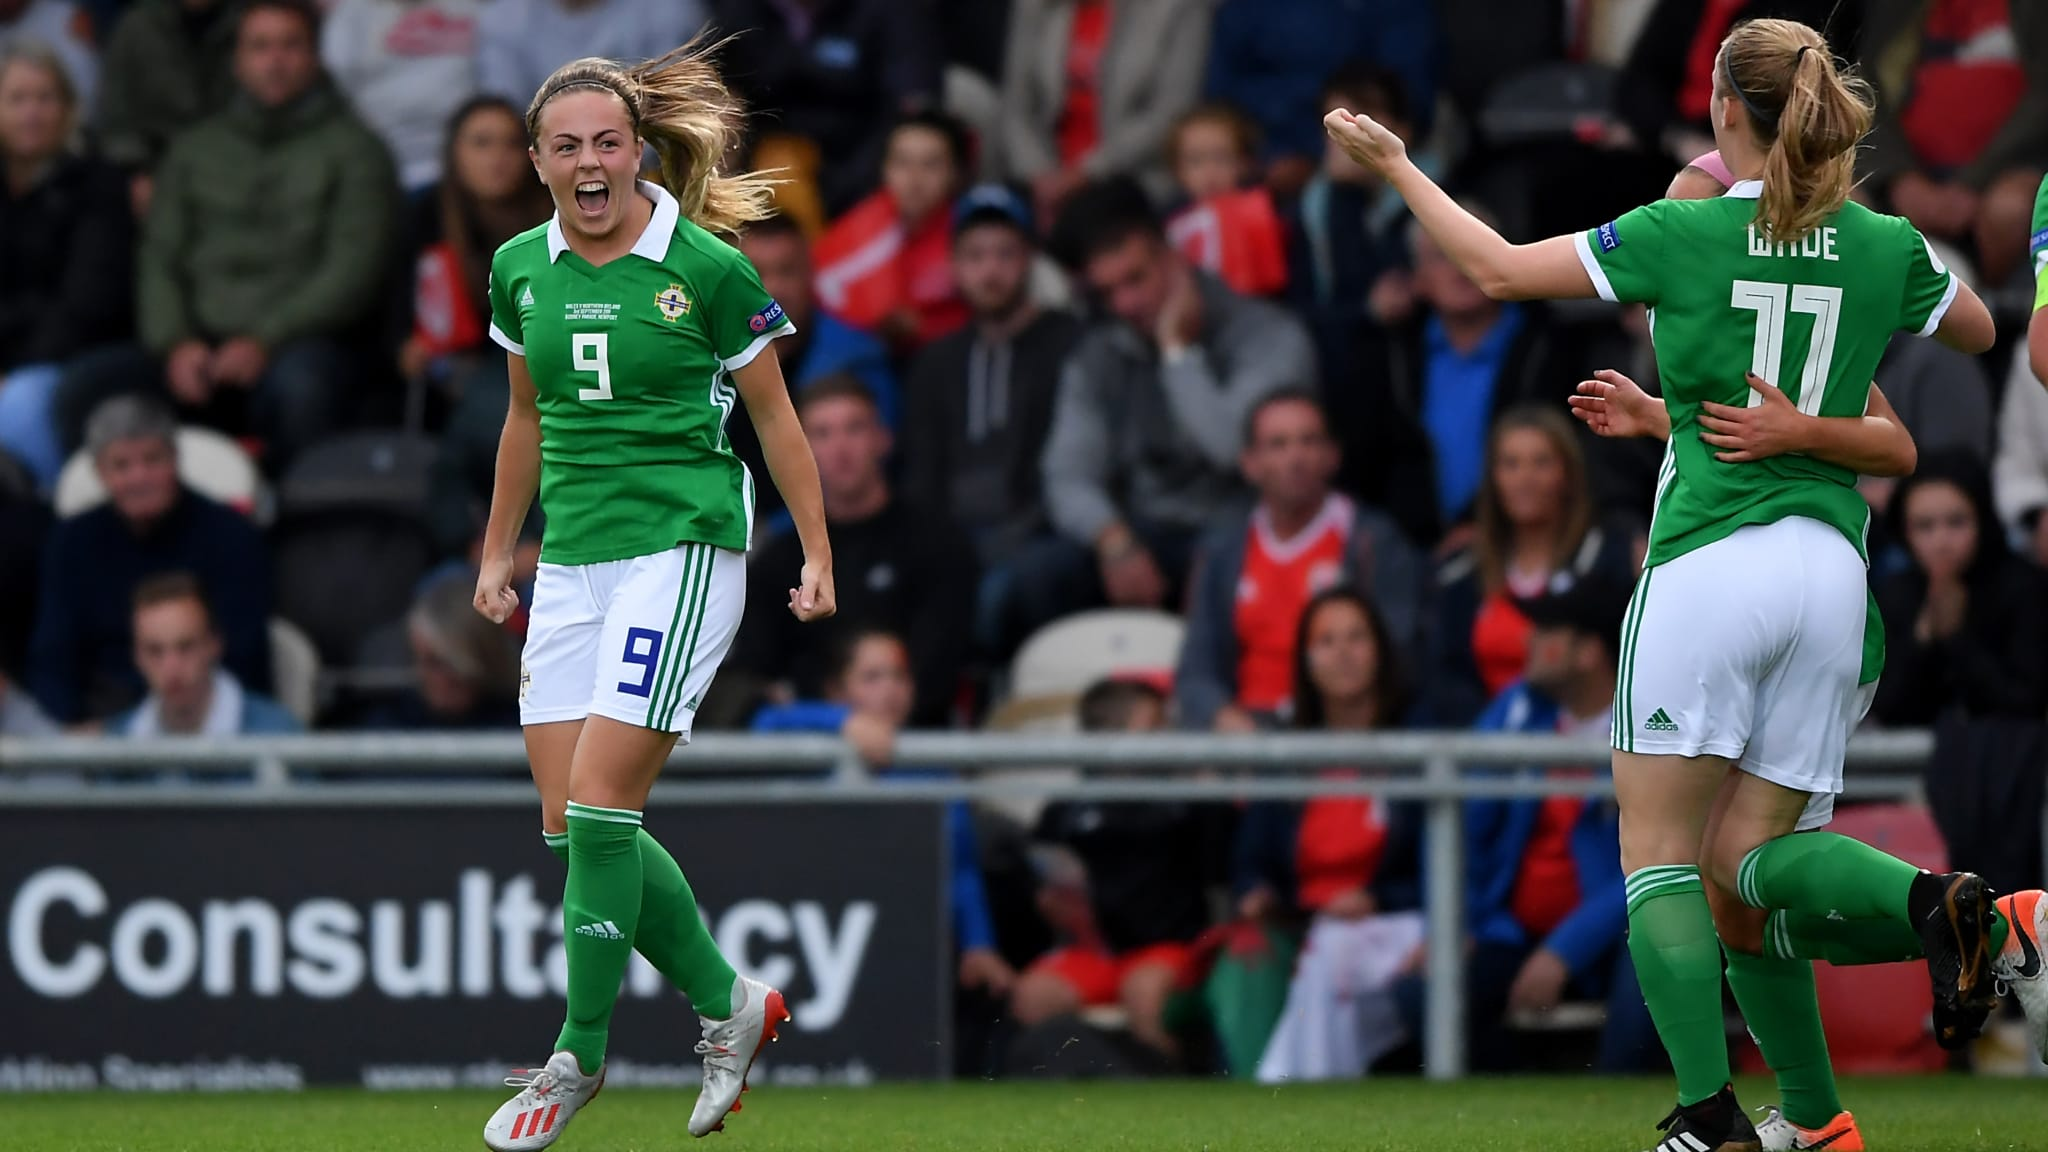 Simone Magill of Northern Ireland celebrates scoring her sides first goal during the UEFA Womens Euro Qualifier match between Wales and Northern Ireland at Rodney Parade on September 03, 2019 in Newport, Wales.